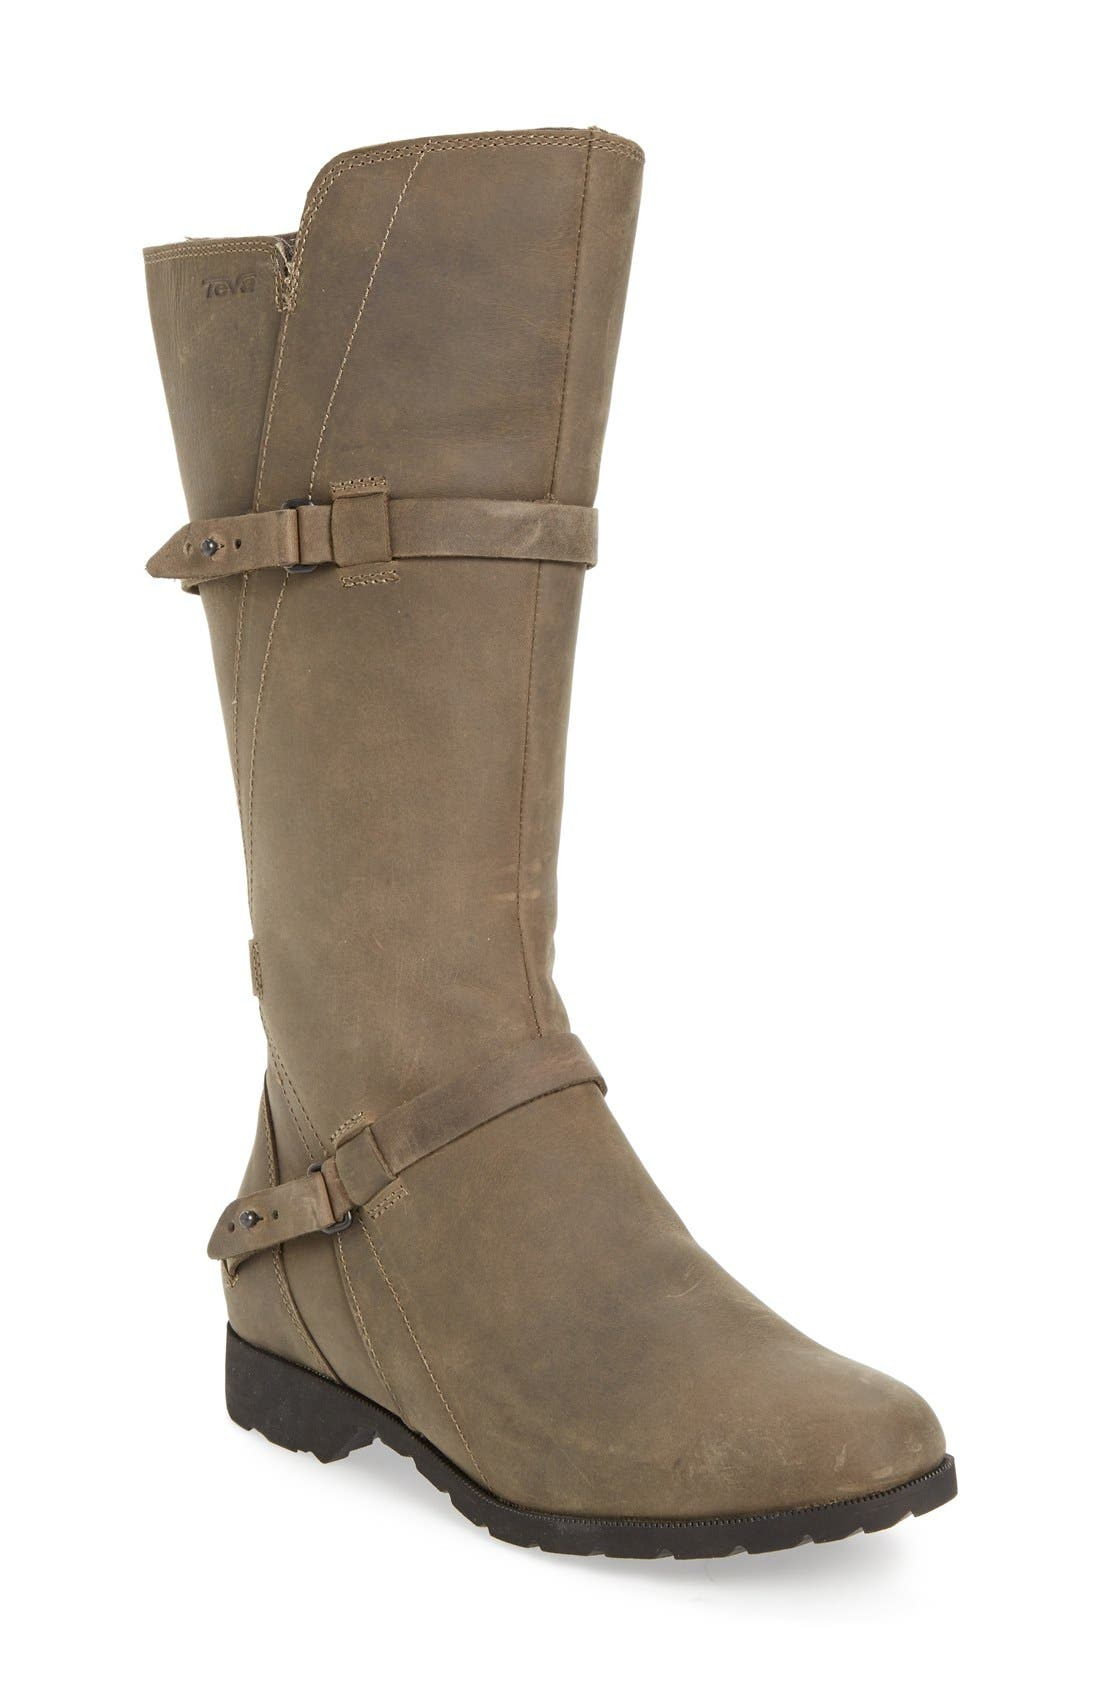 Teva 'De La Vina' Waterproof Riding Boot (Women)